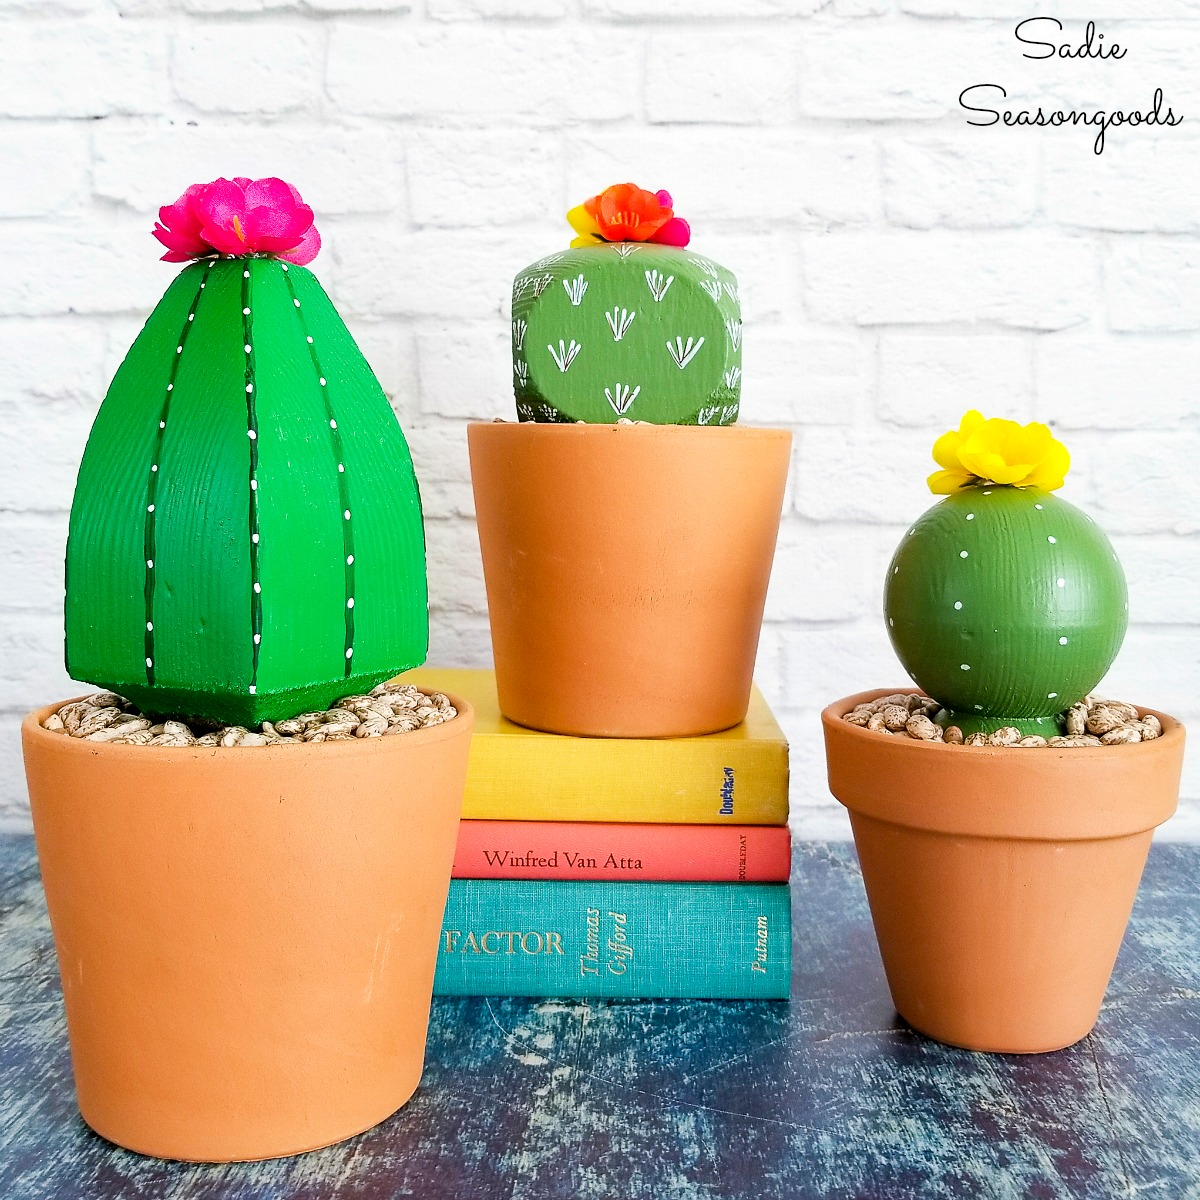 Cactus decor with a Boho vibe by upcycling the post caps into Boho plants